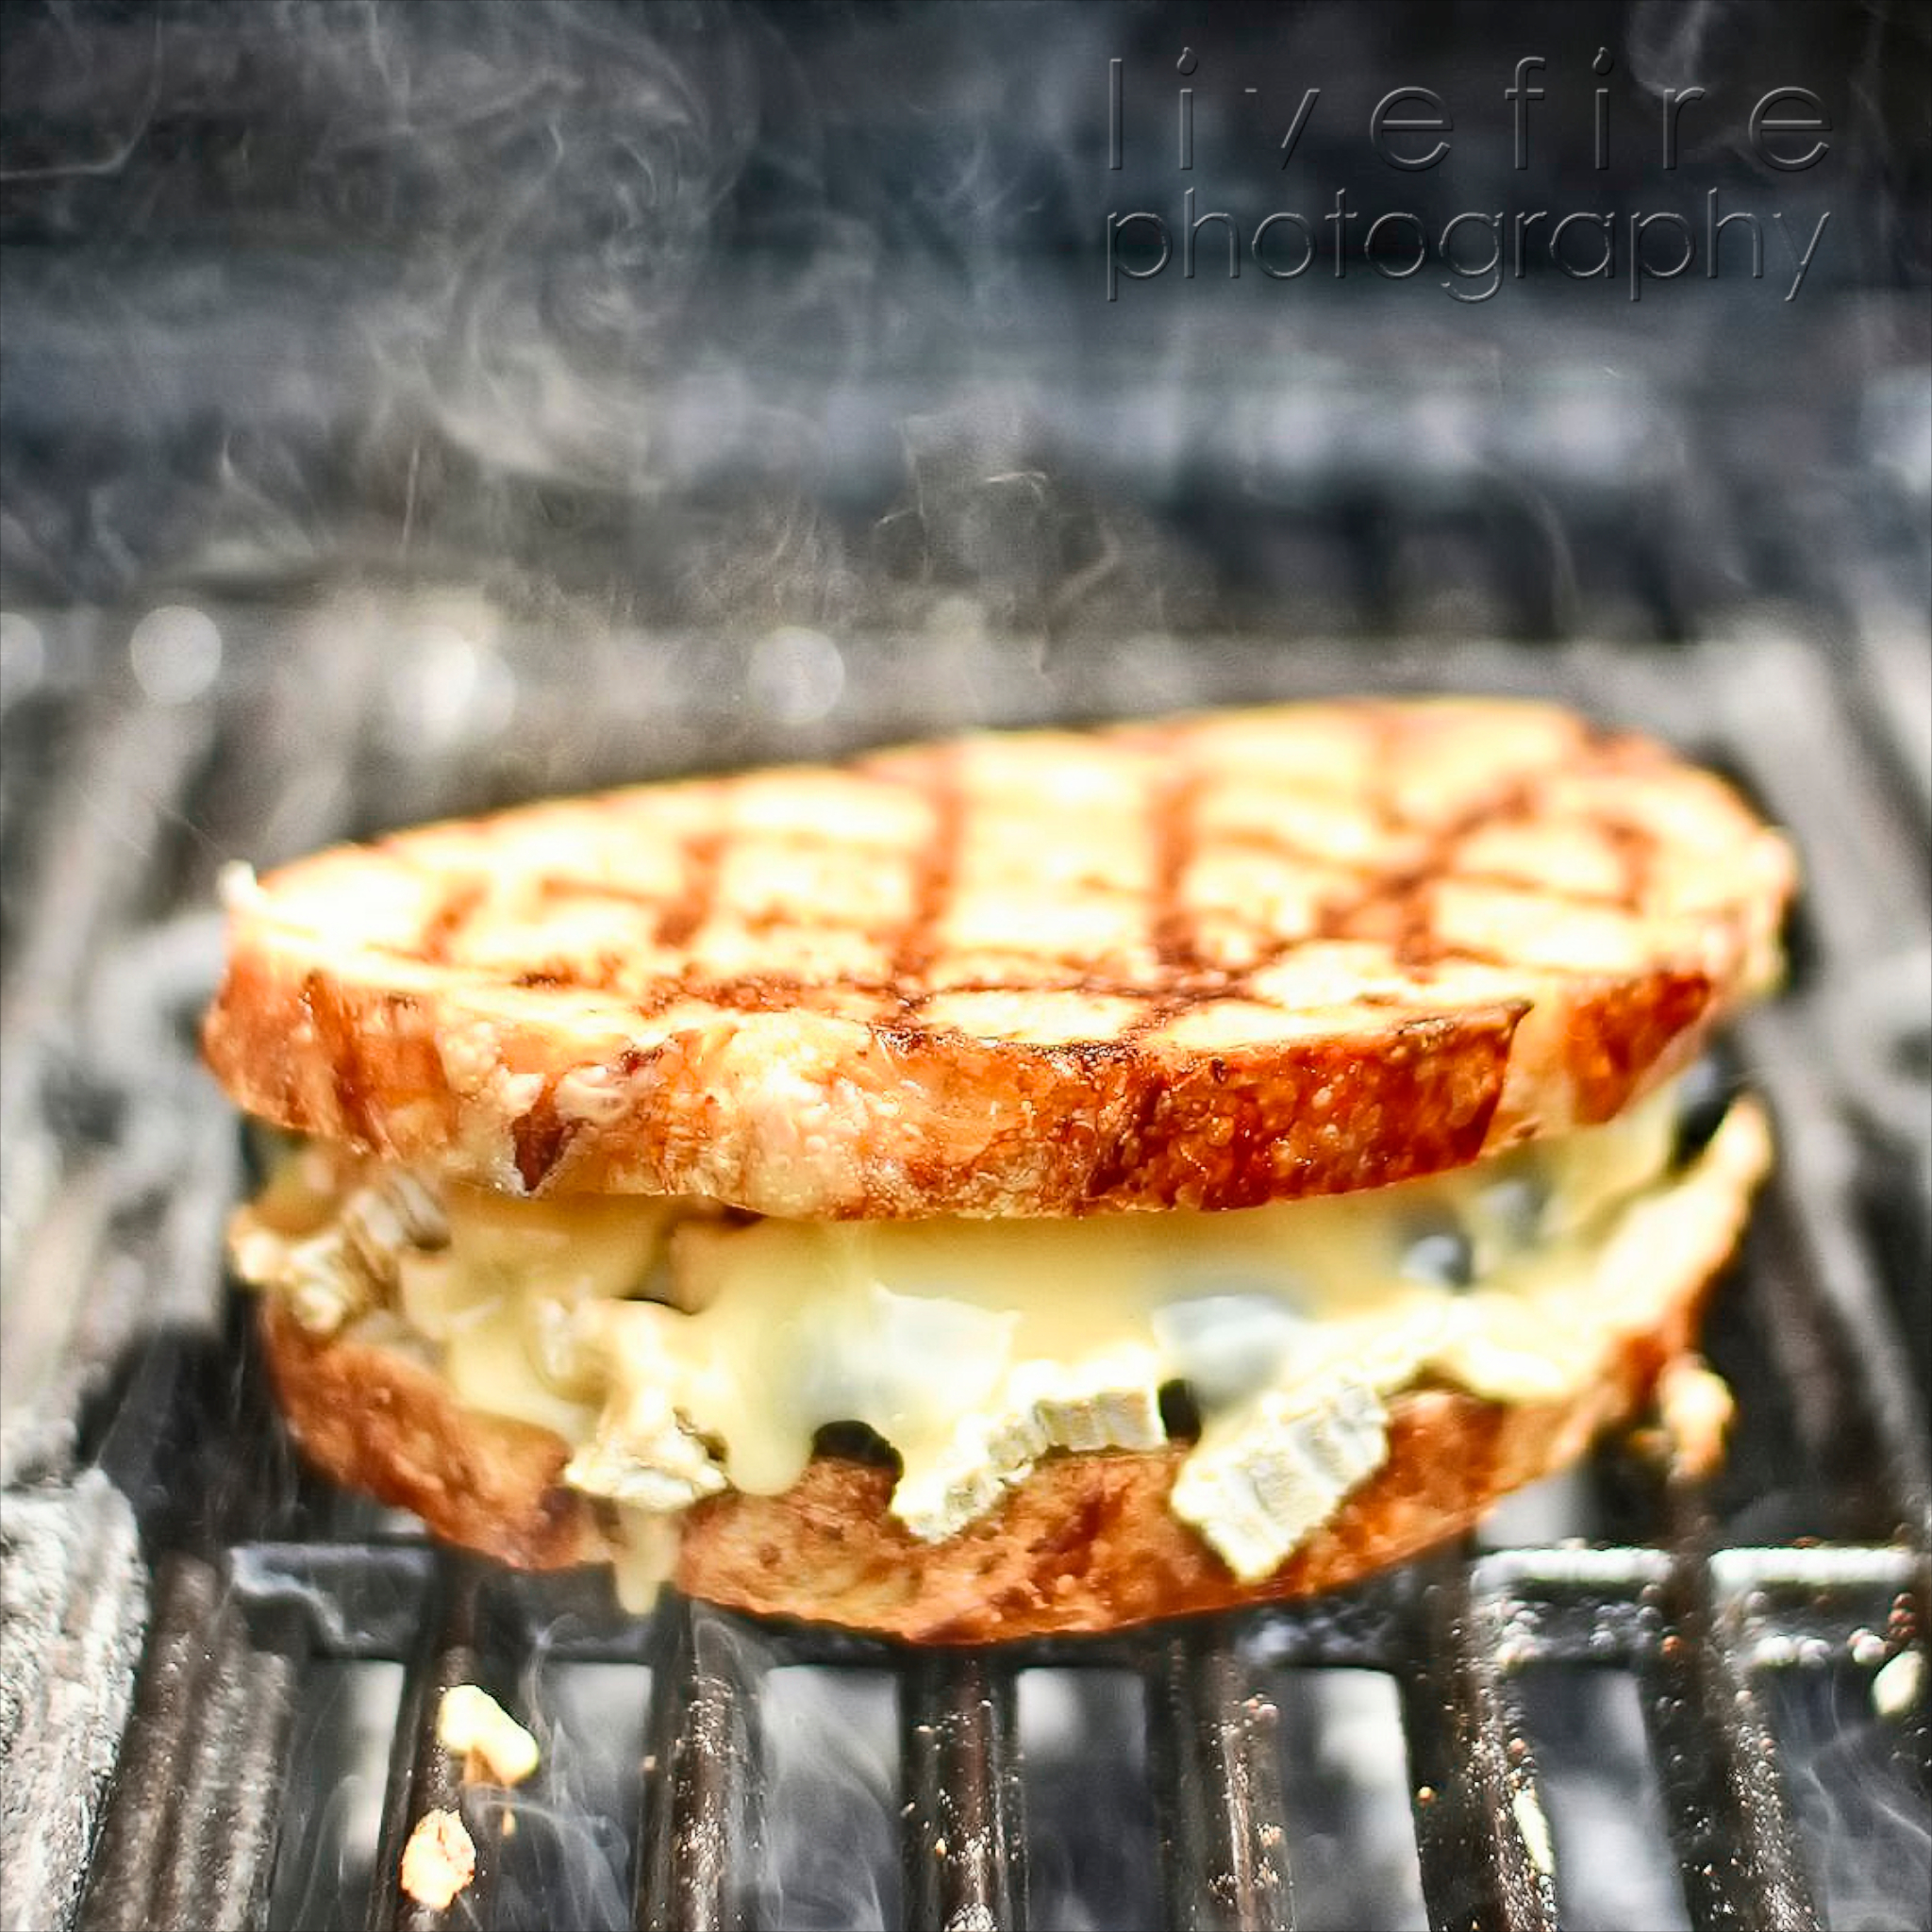 You Need A Grill For Grilled Cheese